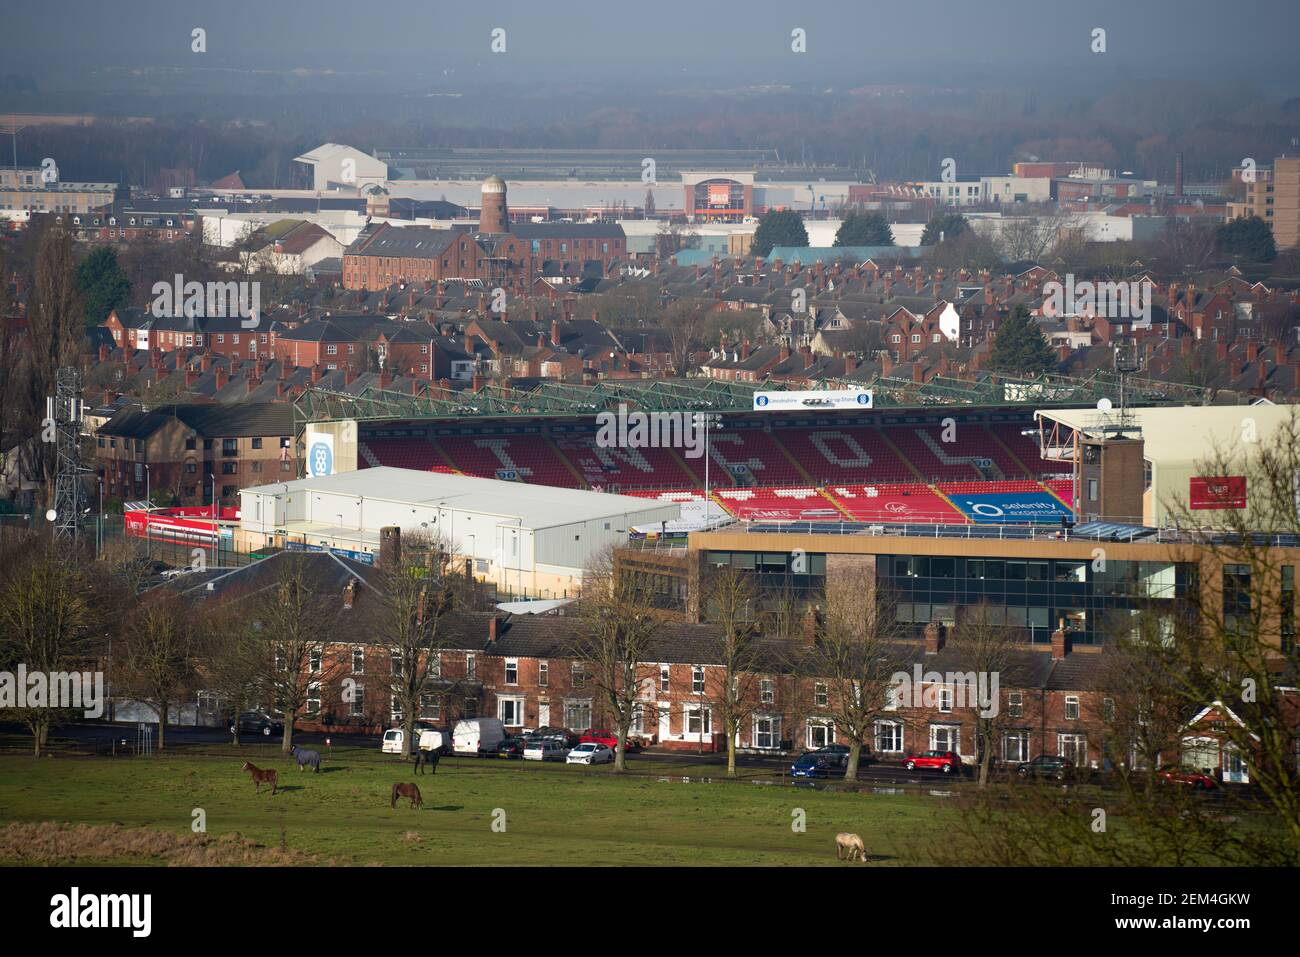 Lincoln City Football Club, professional association football club, League One, English league football Sincil Bank stadium, EFL League One, LNER. Stock Photo